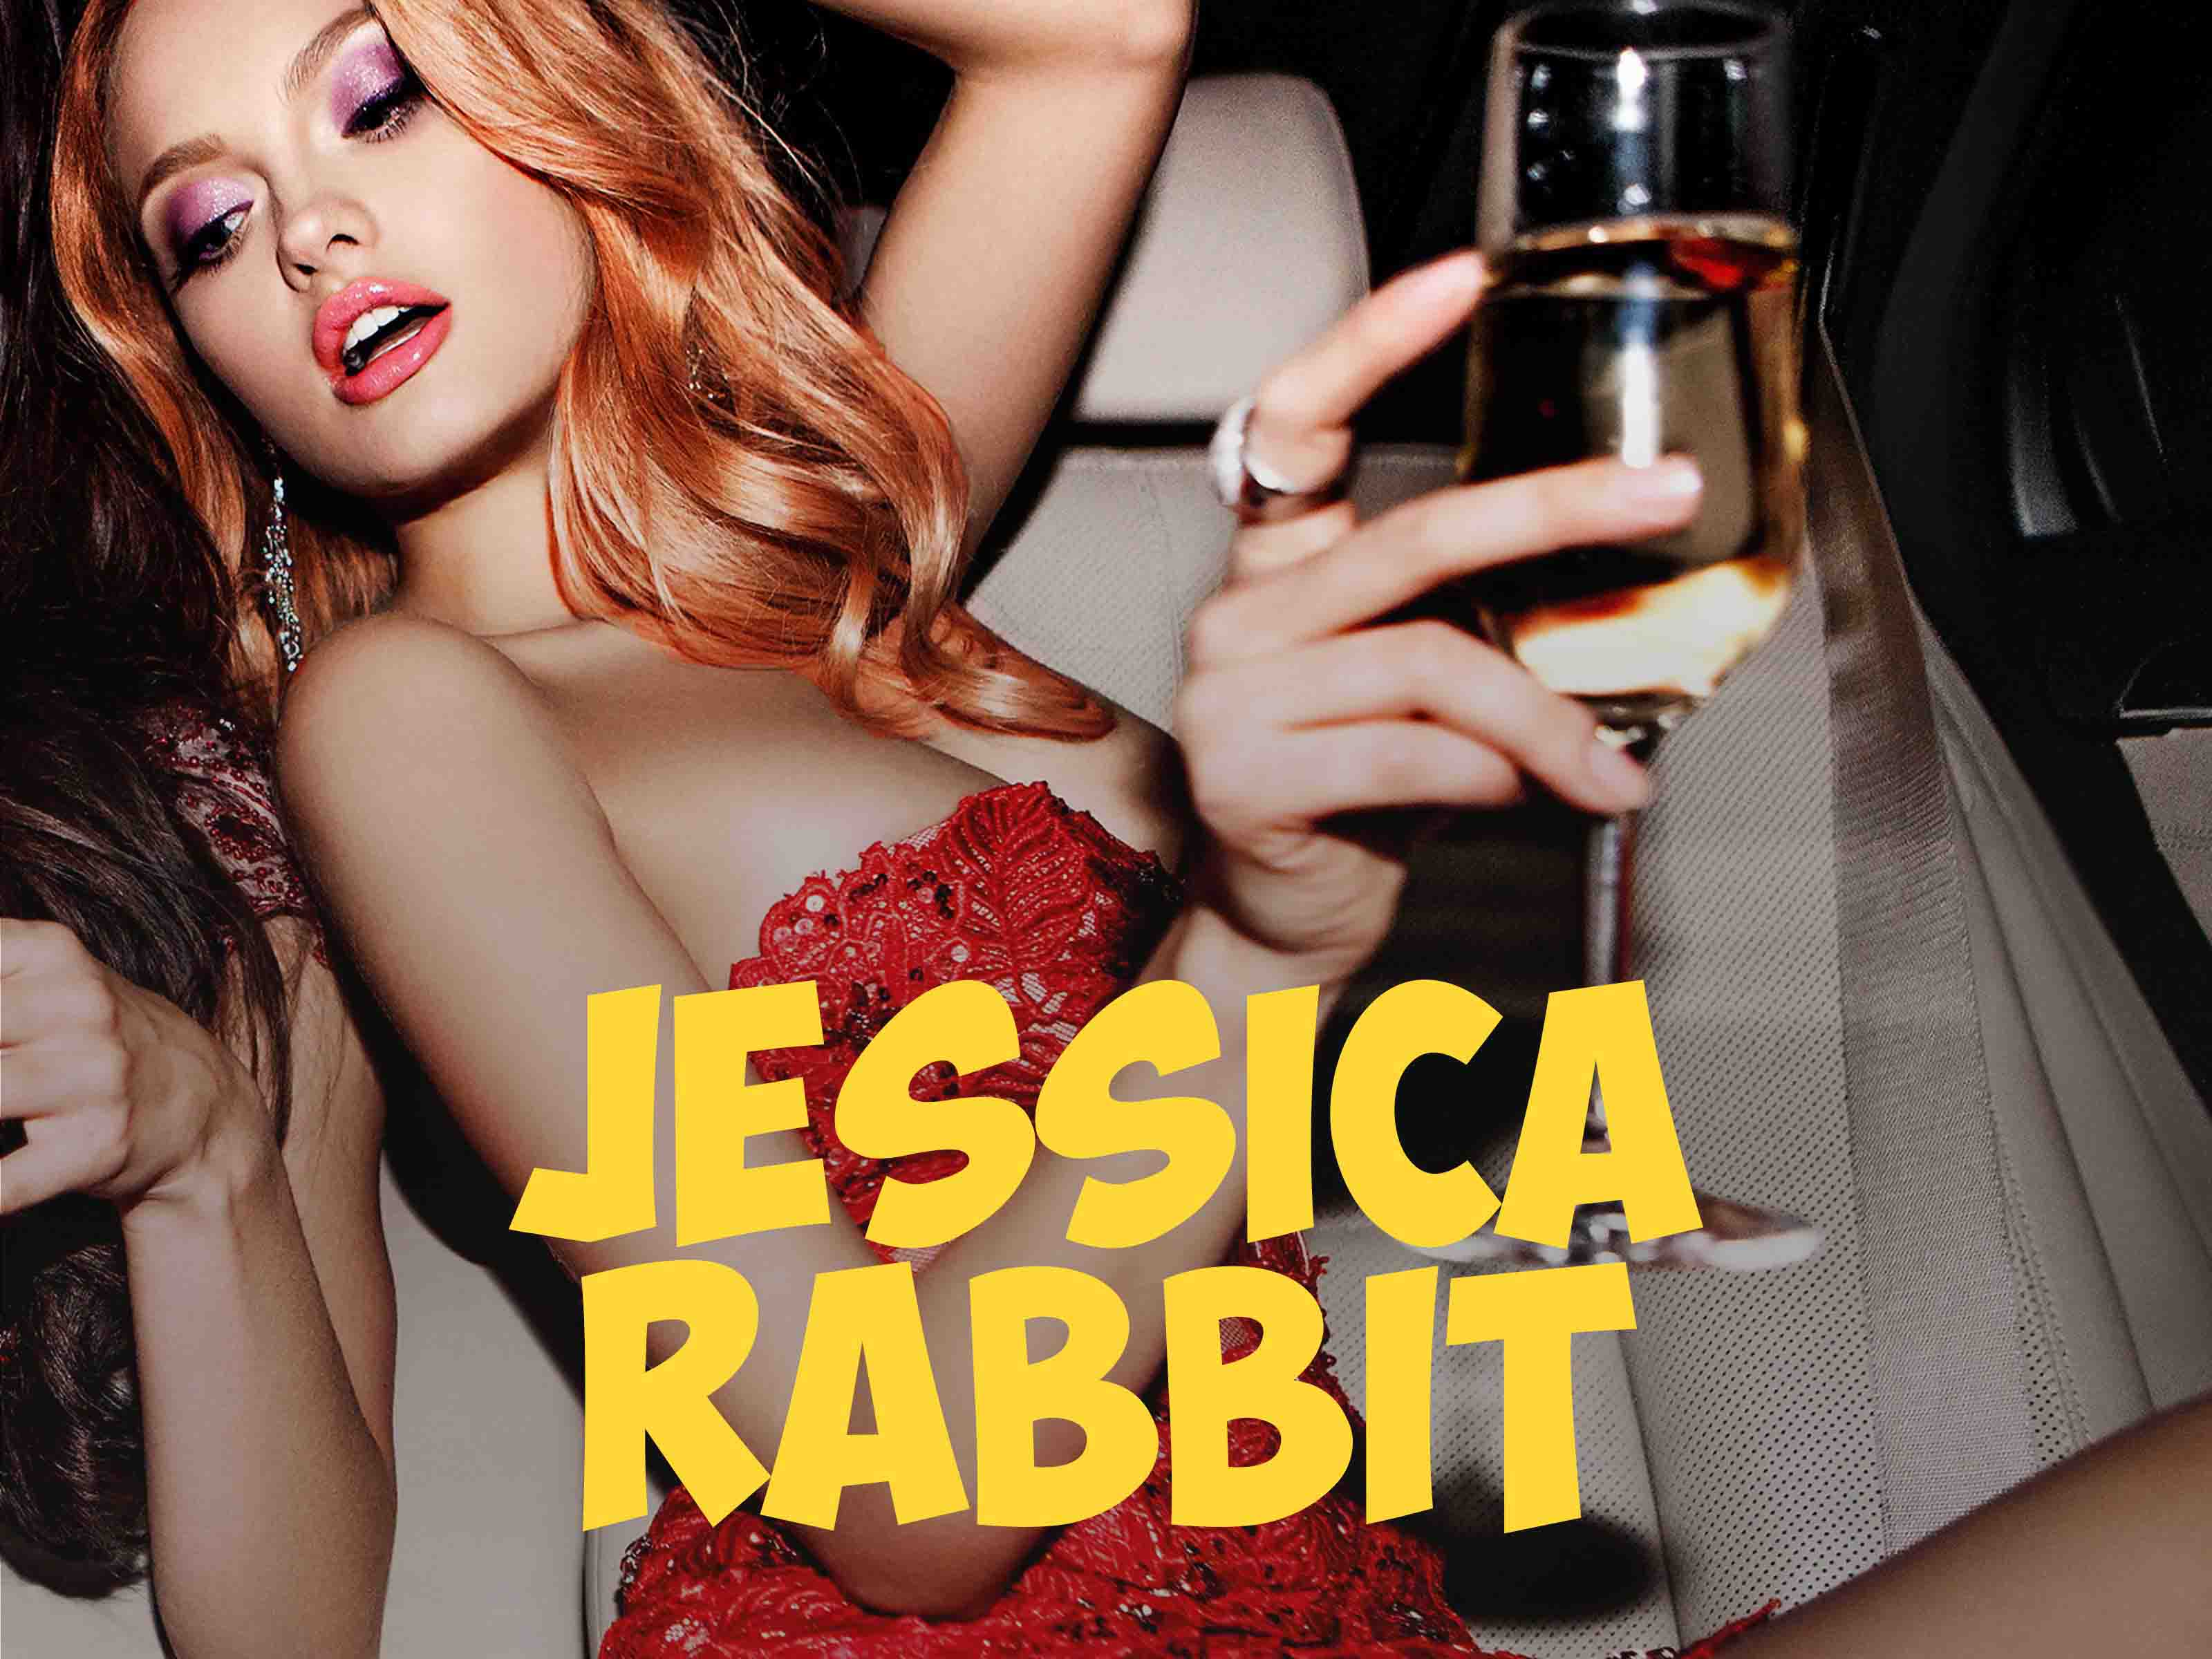 Hen Party Themes - Jessica Rabbit